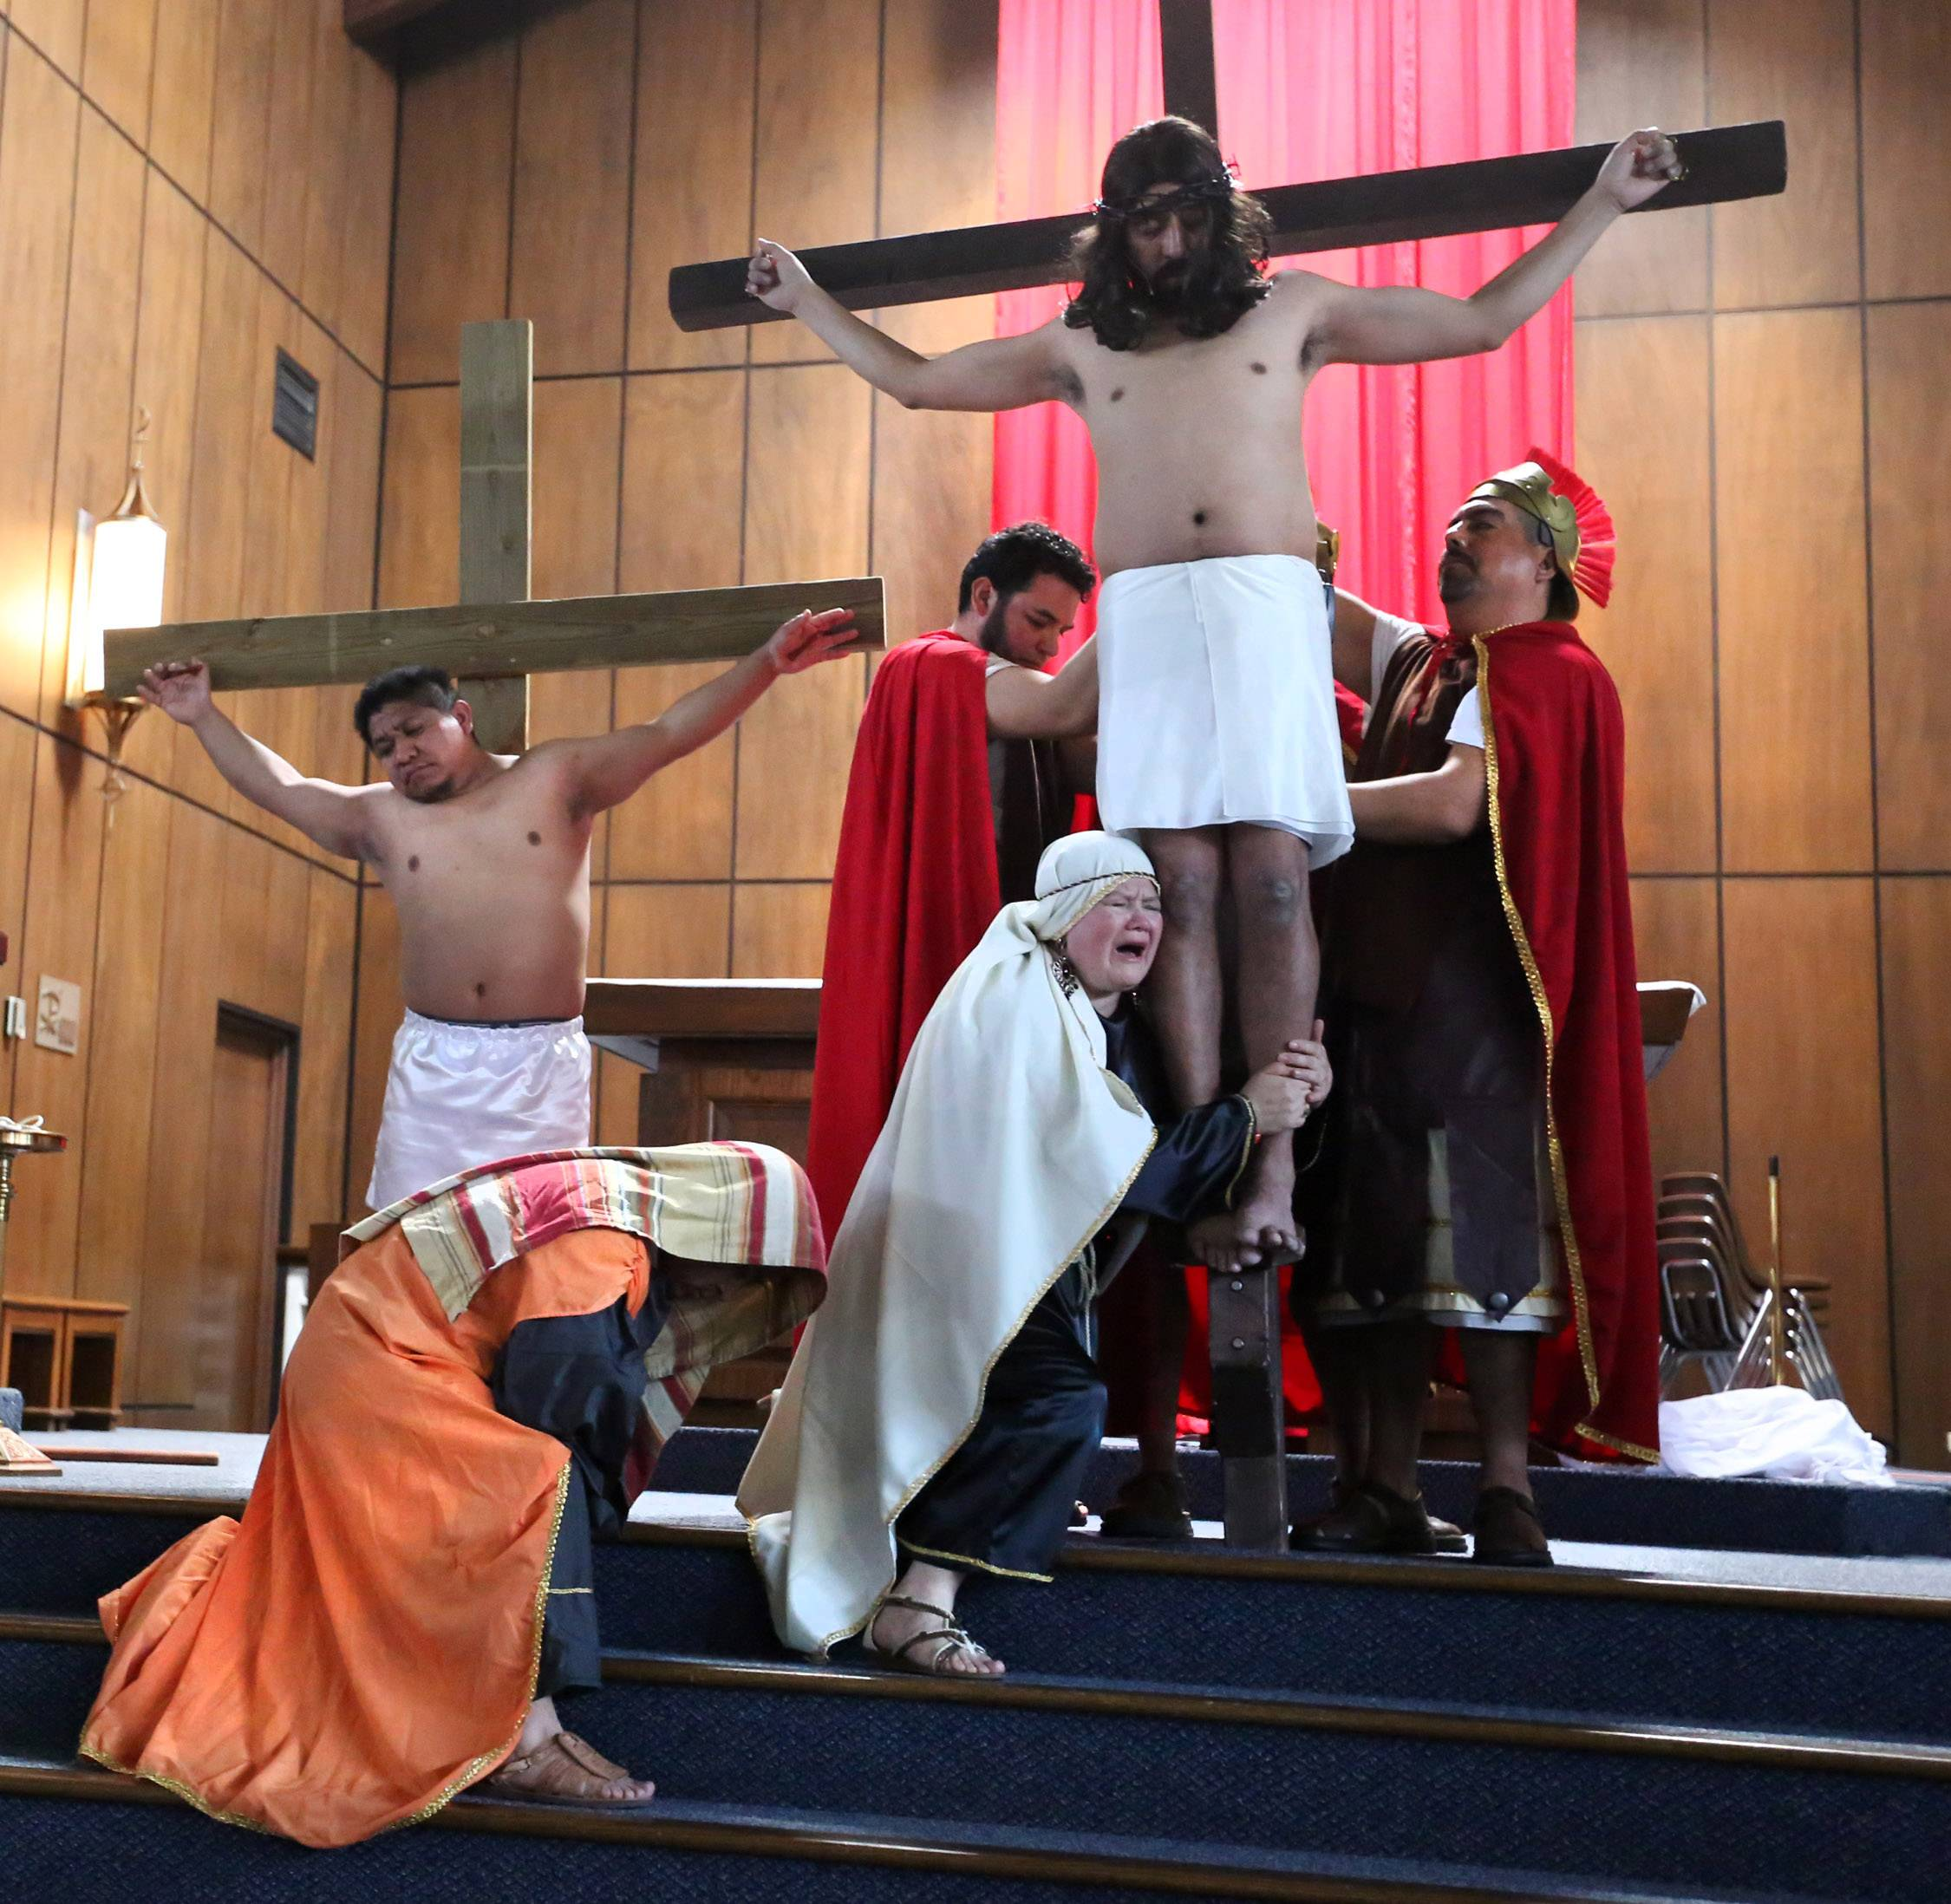 Mary Magdalene, portrayed by Emilia Urbe, clings to the legs of Jesus, who was played by Miguel Angel Correa. The Mundelein residents appeared in Via Crucis at Santa Maria del Popolo Catholic Church in Mundelein on Good Friday. The annual drama illustrates the passion and death of Jesus Christ.